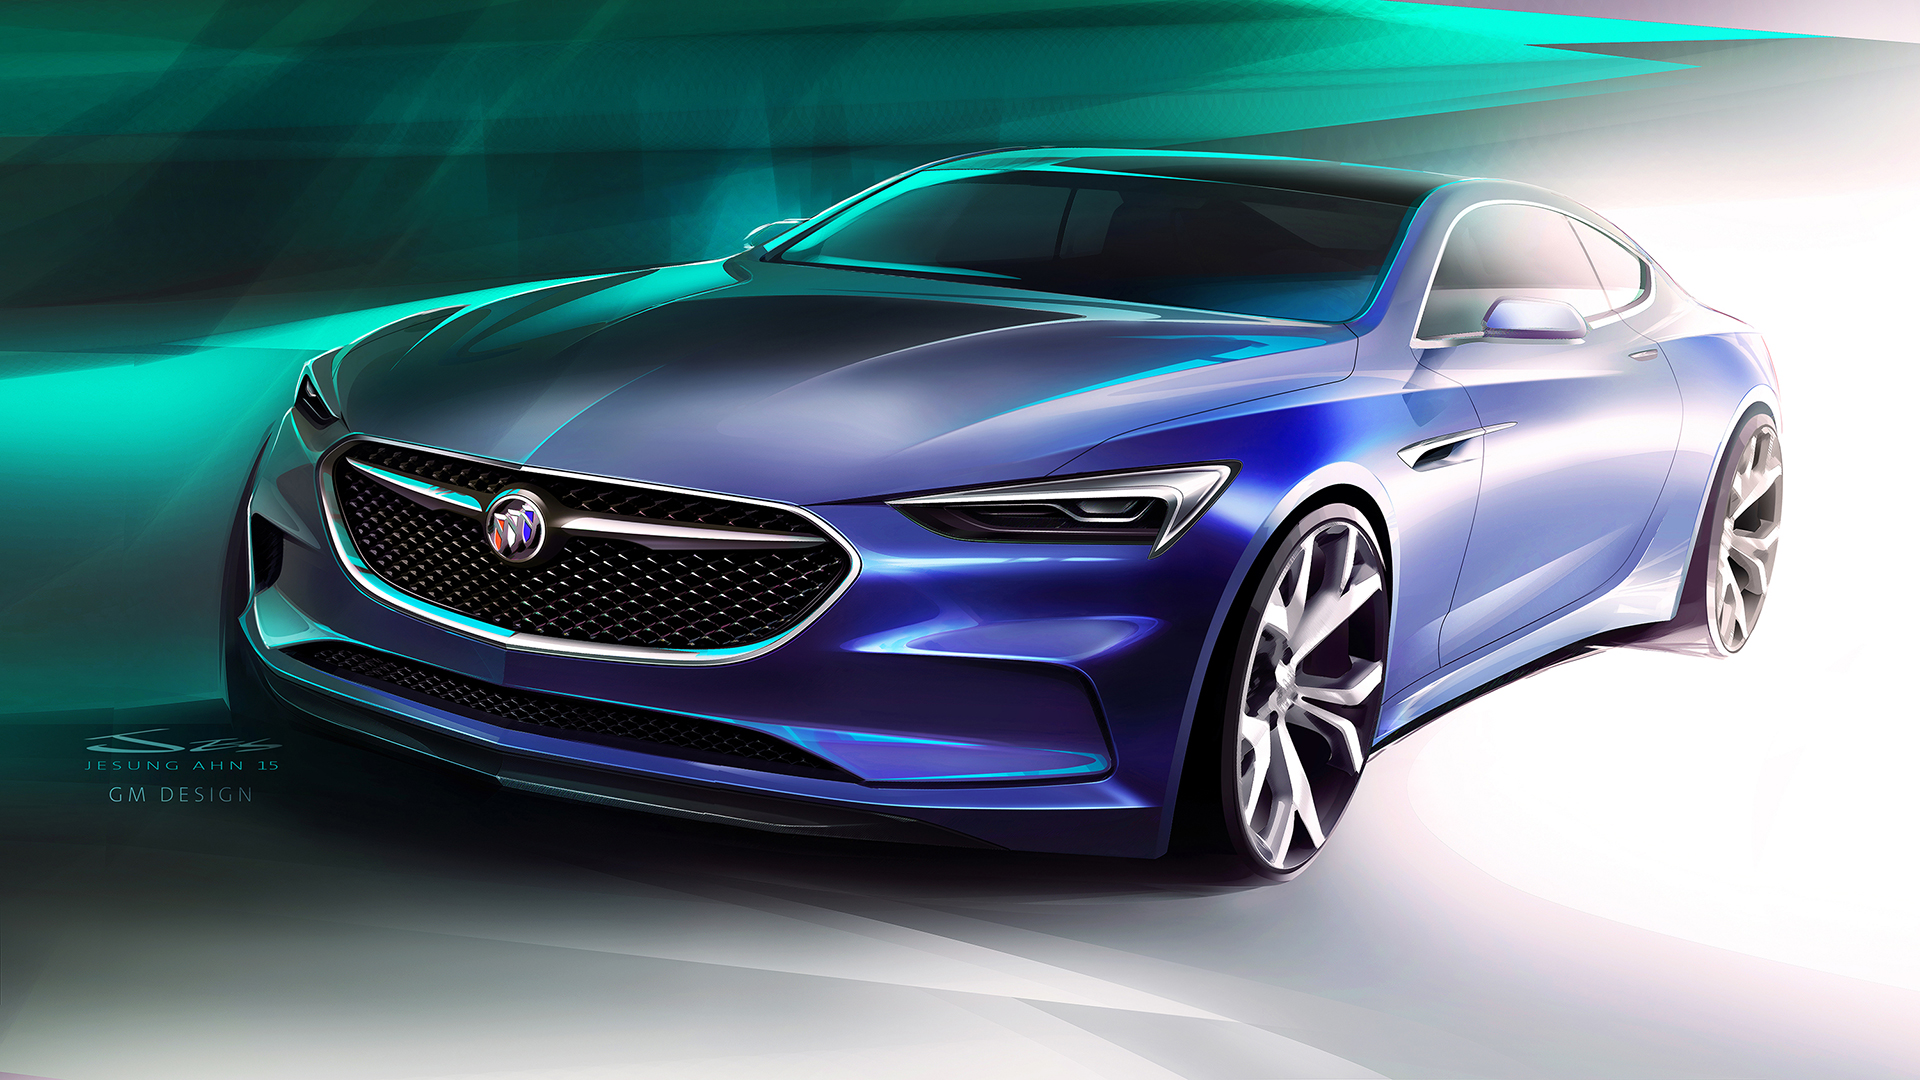 Buick Avista concept - 2016 - sketch design - front / avant - General Motors